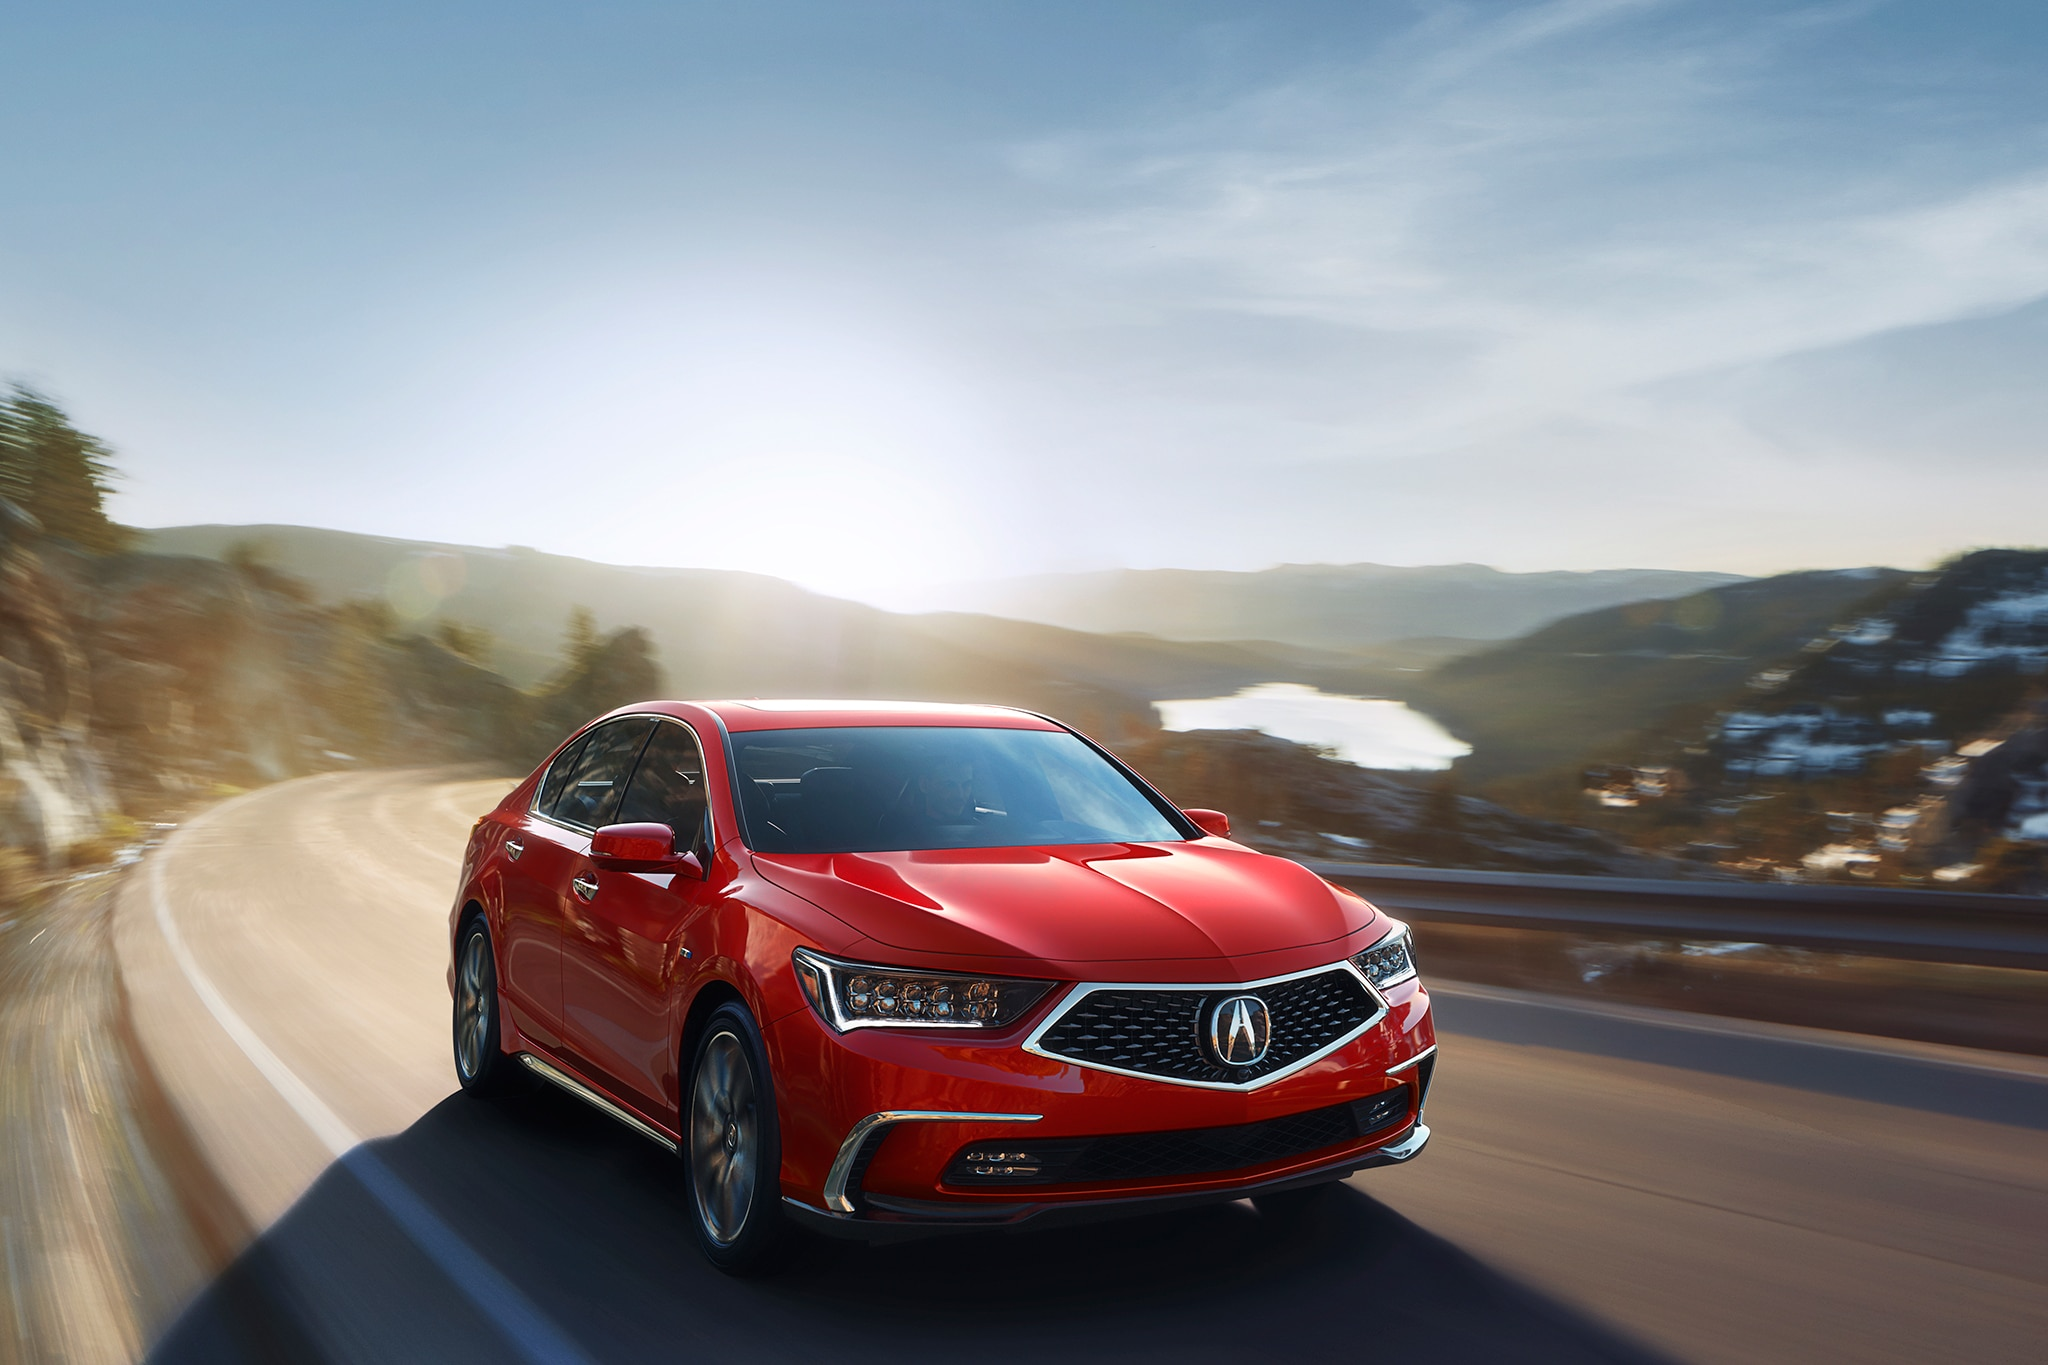 Acura unveils updated 2018 RLX with more aggressive styling